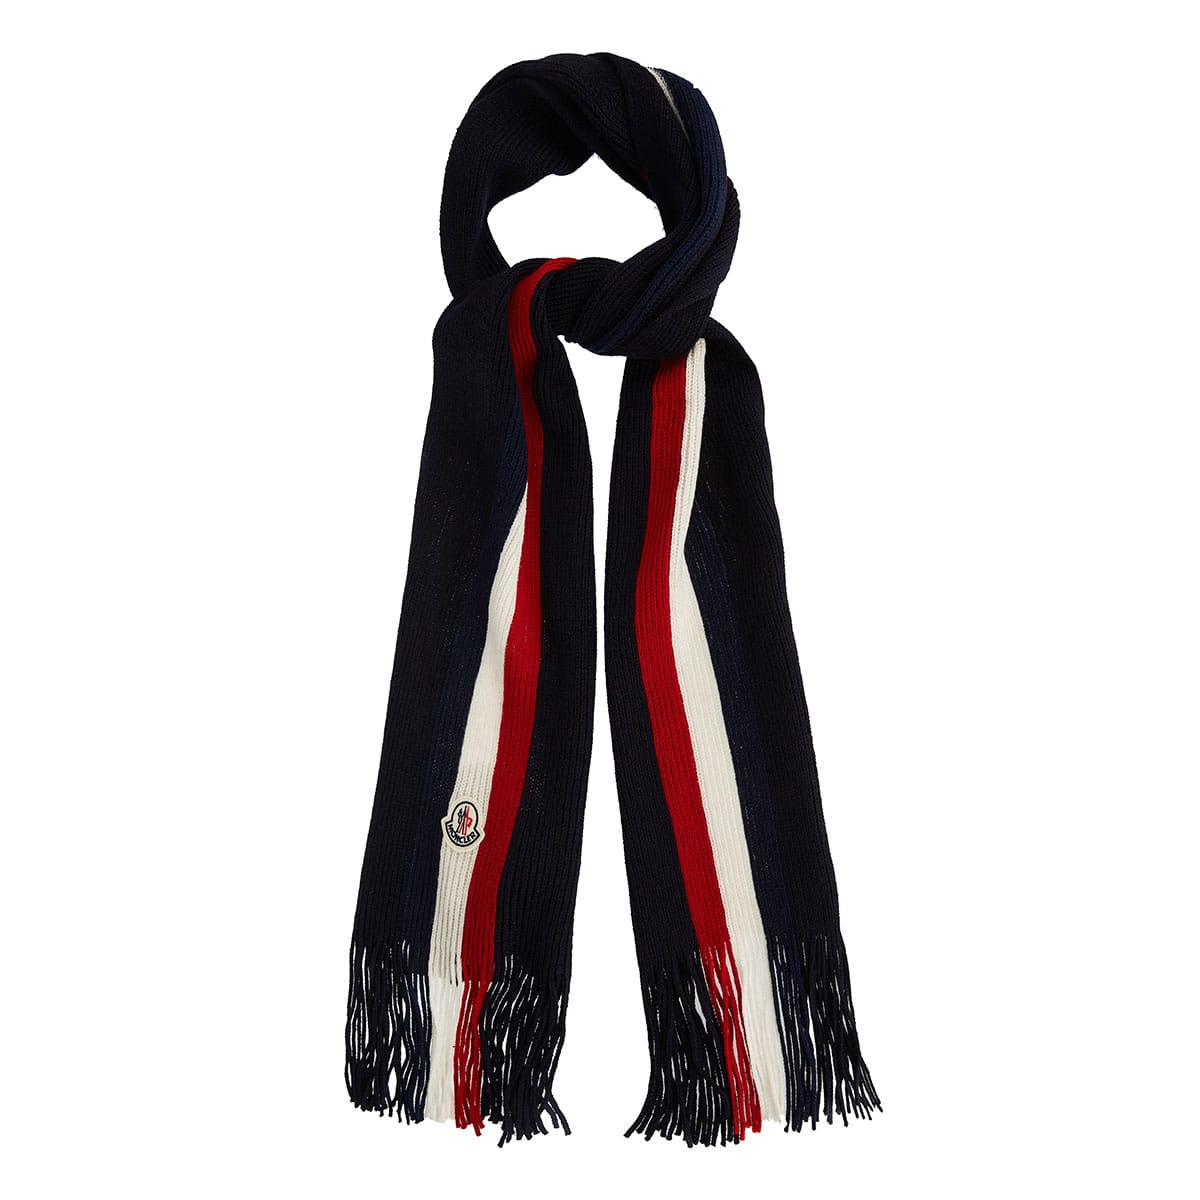 Fringed striped wool-knitted scarf